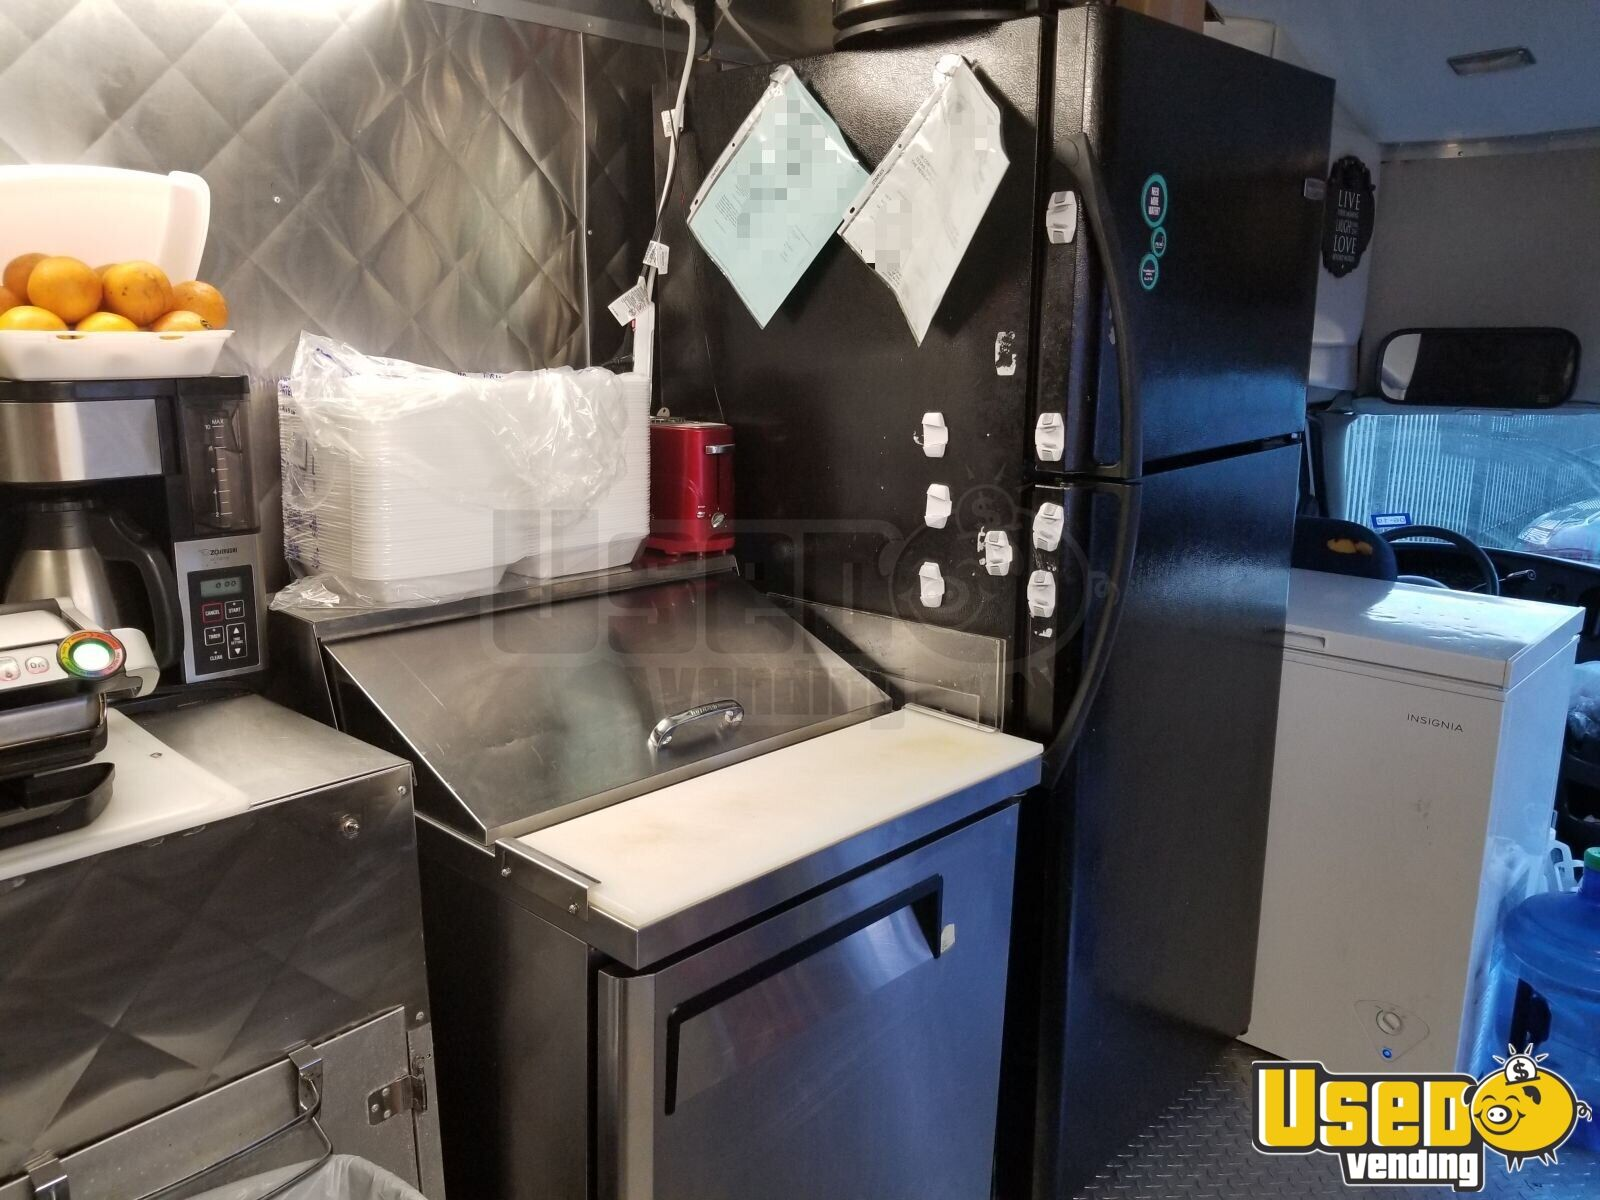 2006 Ford E-350 All-purpose Food Truck Microwave Texas for Sale - 14